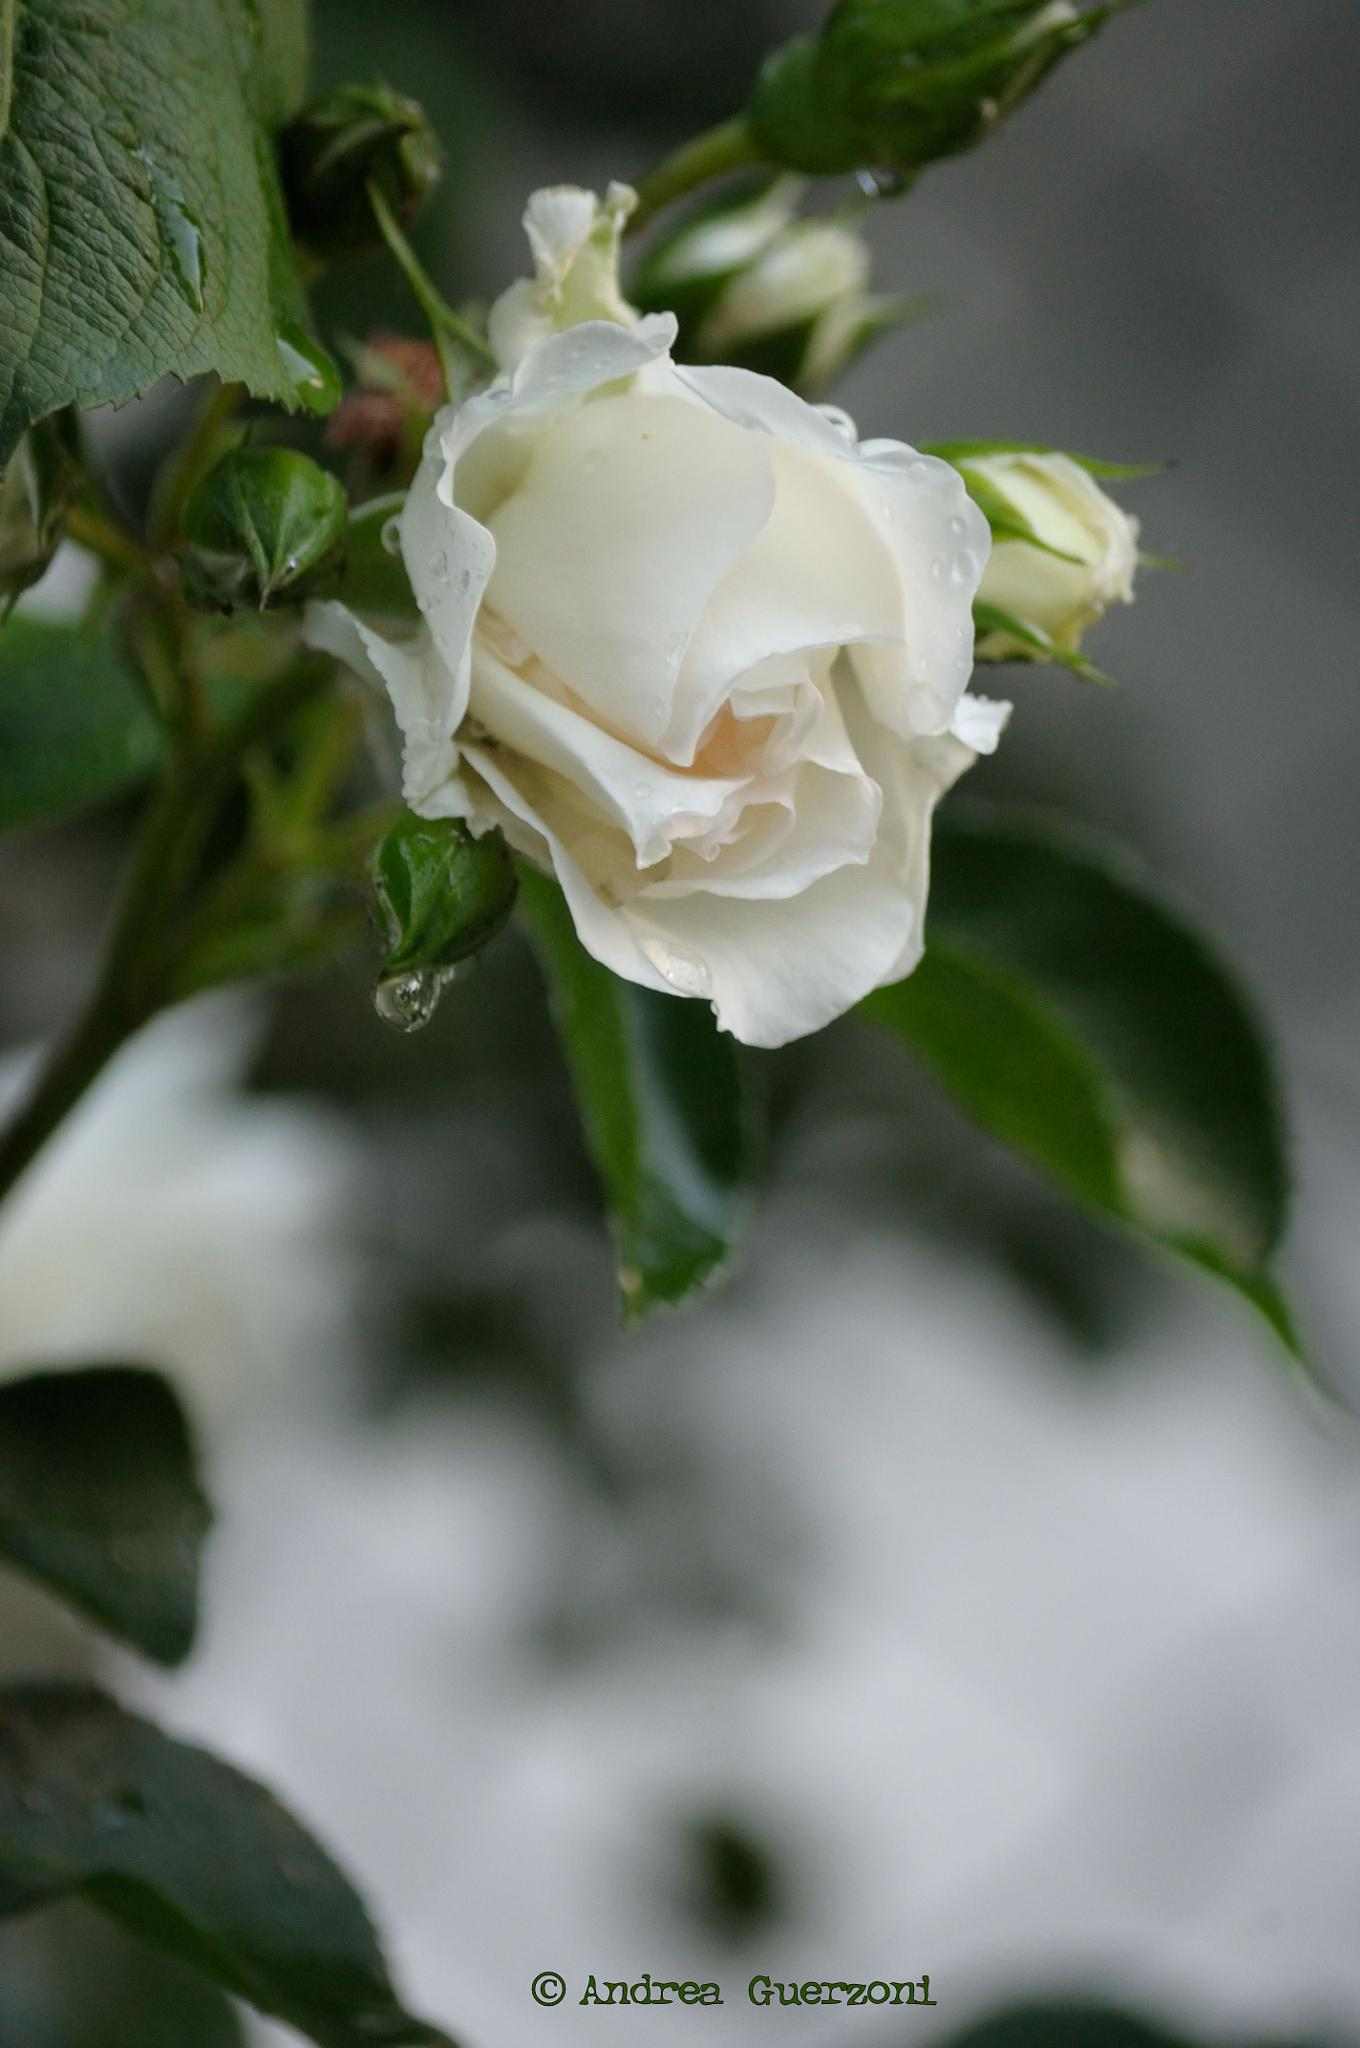 White rose by Andrea Guerzoni